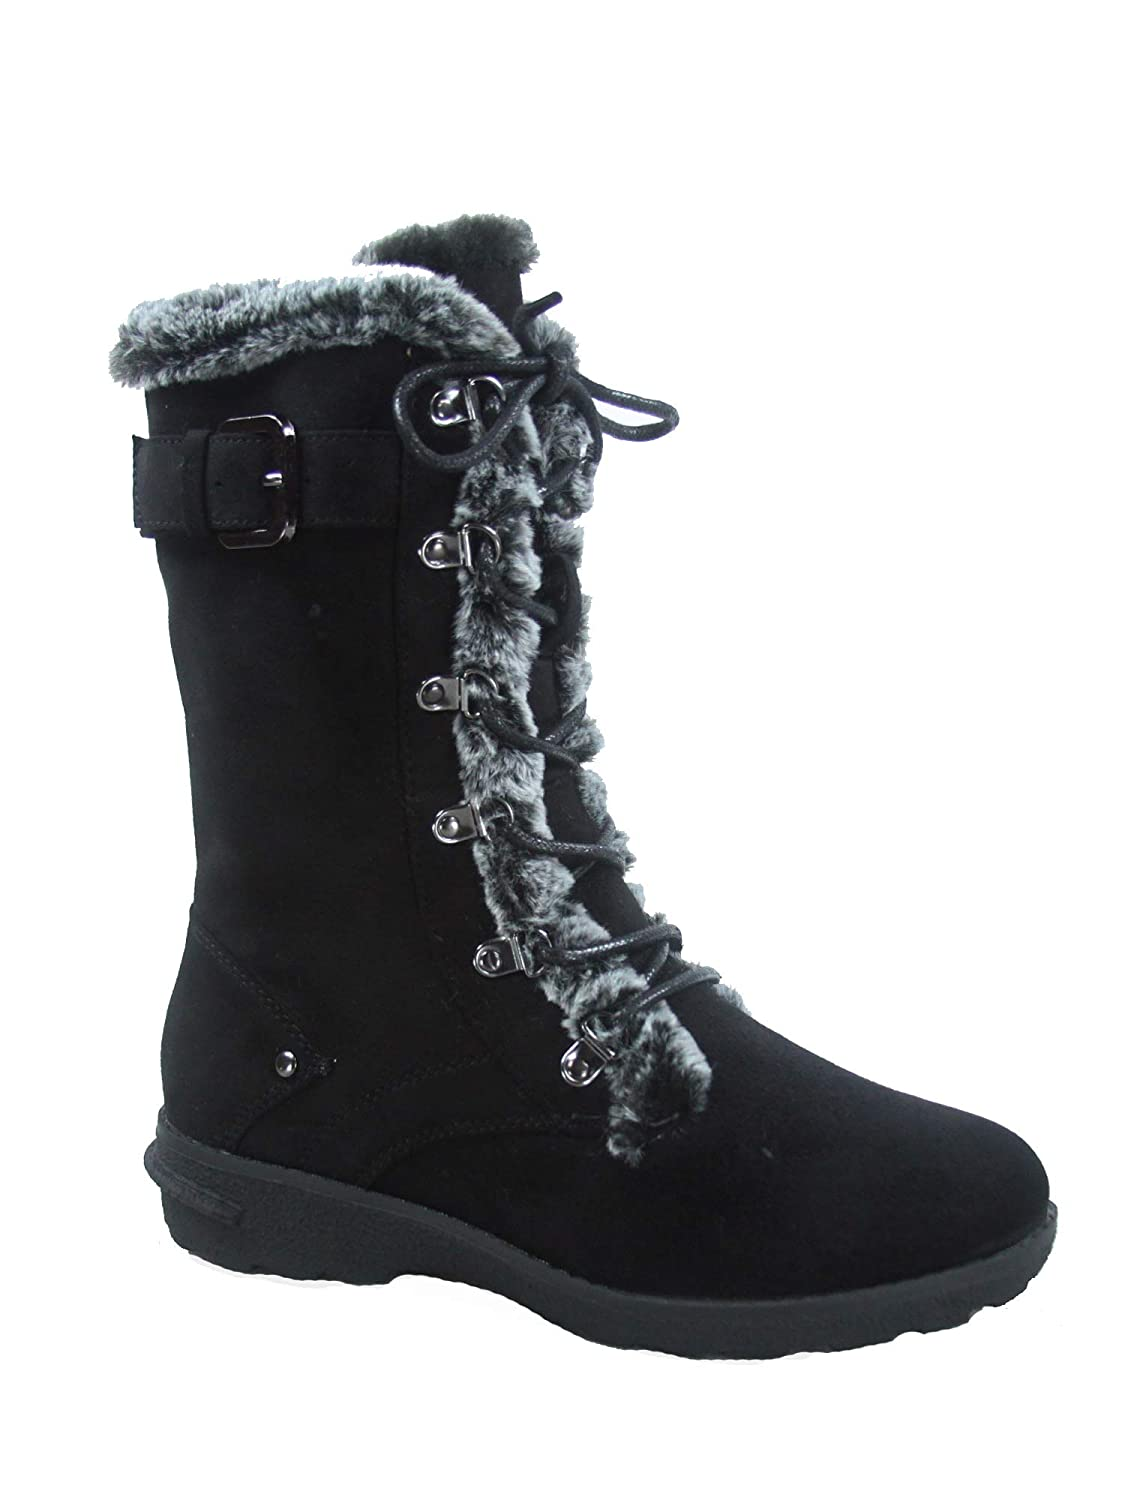 Black Forever Link FZ-Aura-10 Women's Fashion Round Toe Lace Up Zipper Mid-Calf Winter Snow Boots shoes